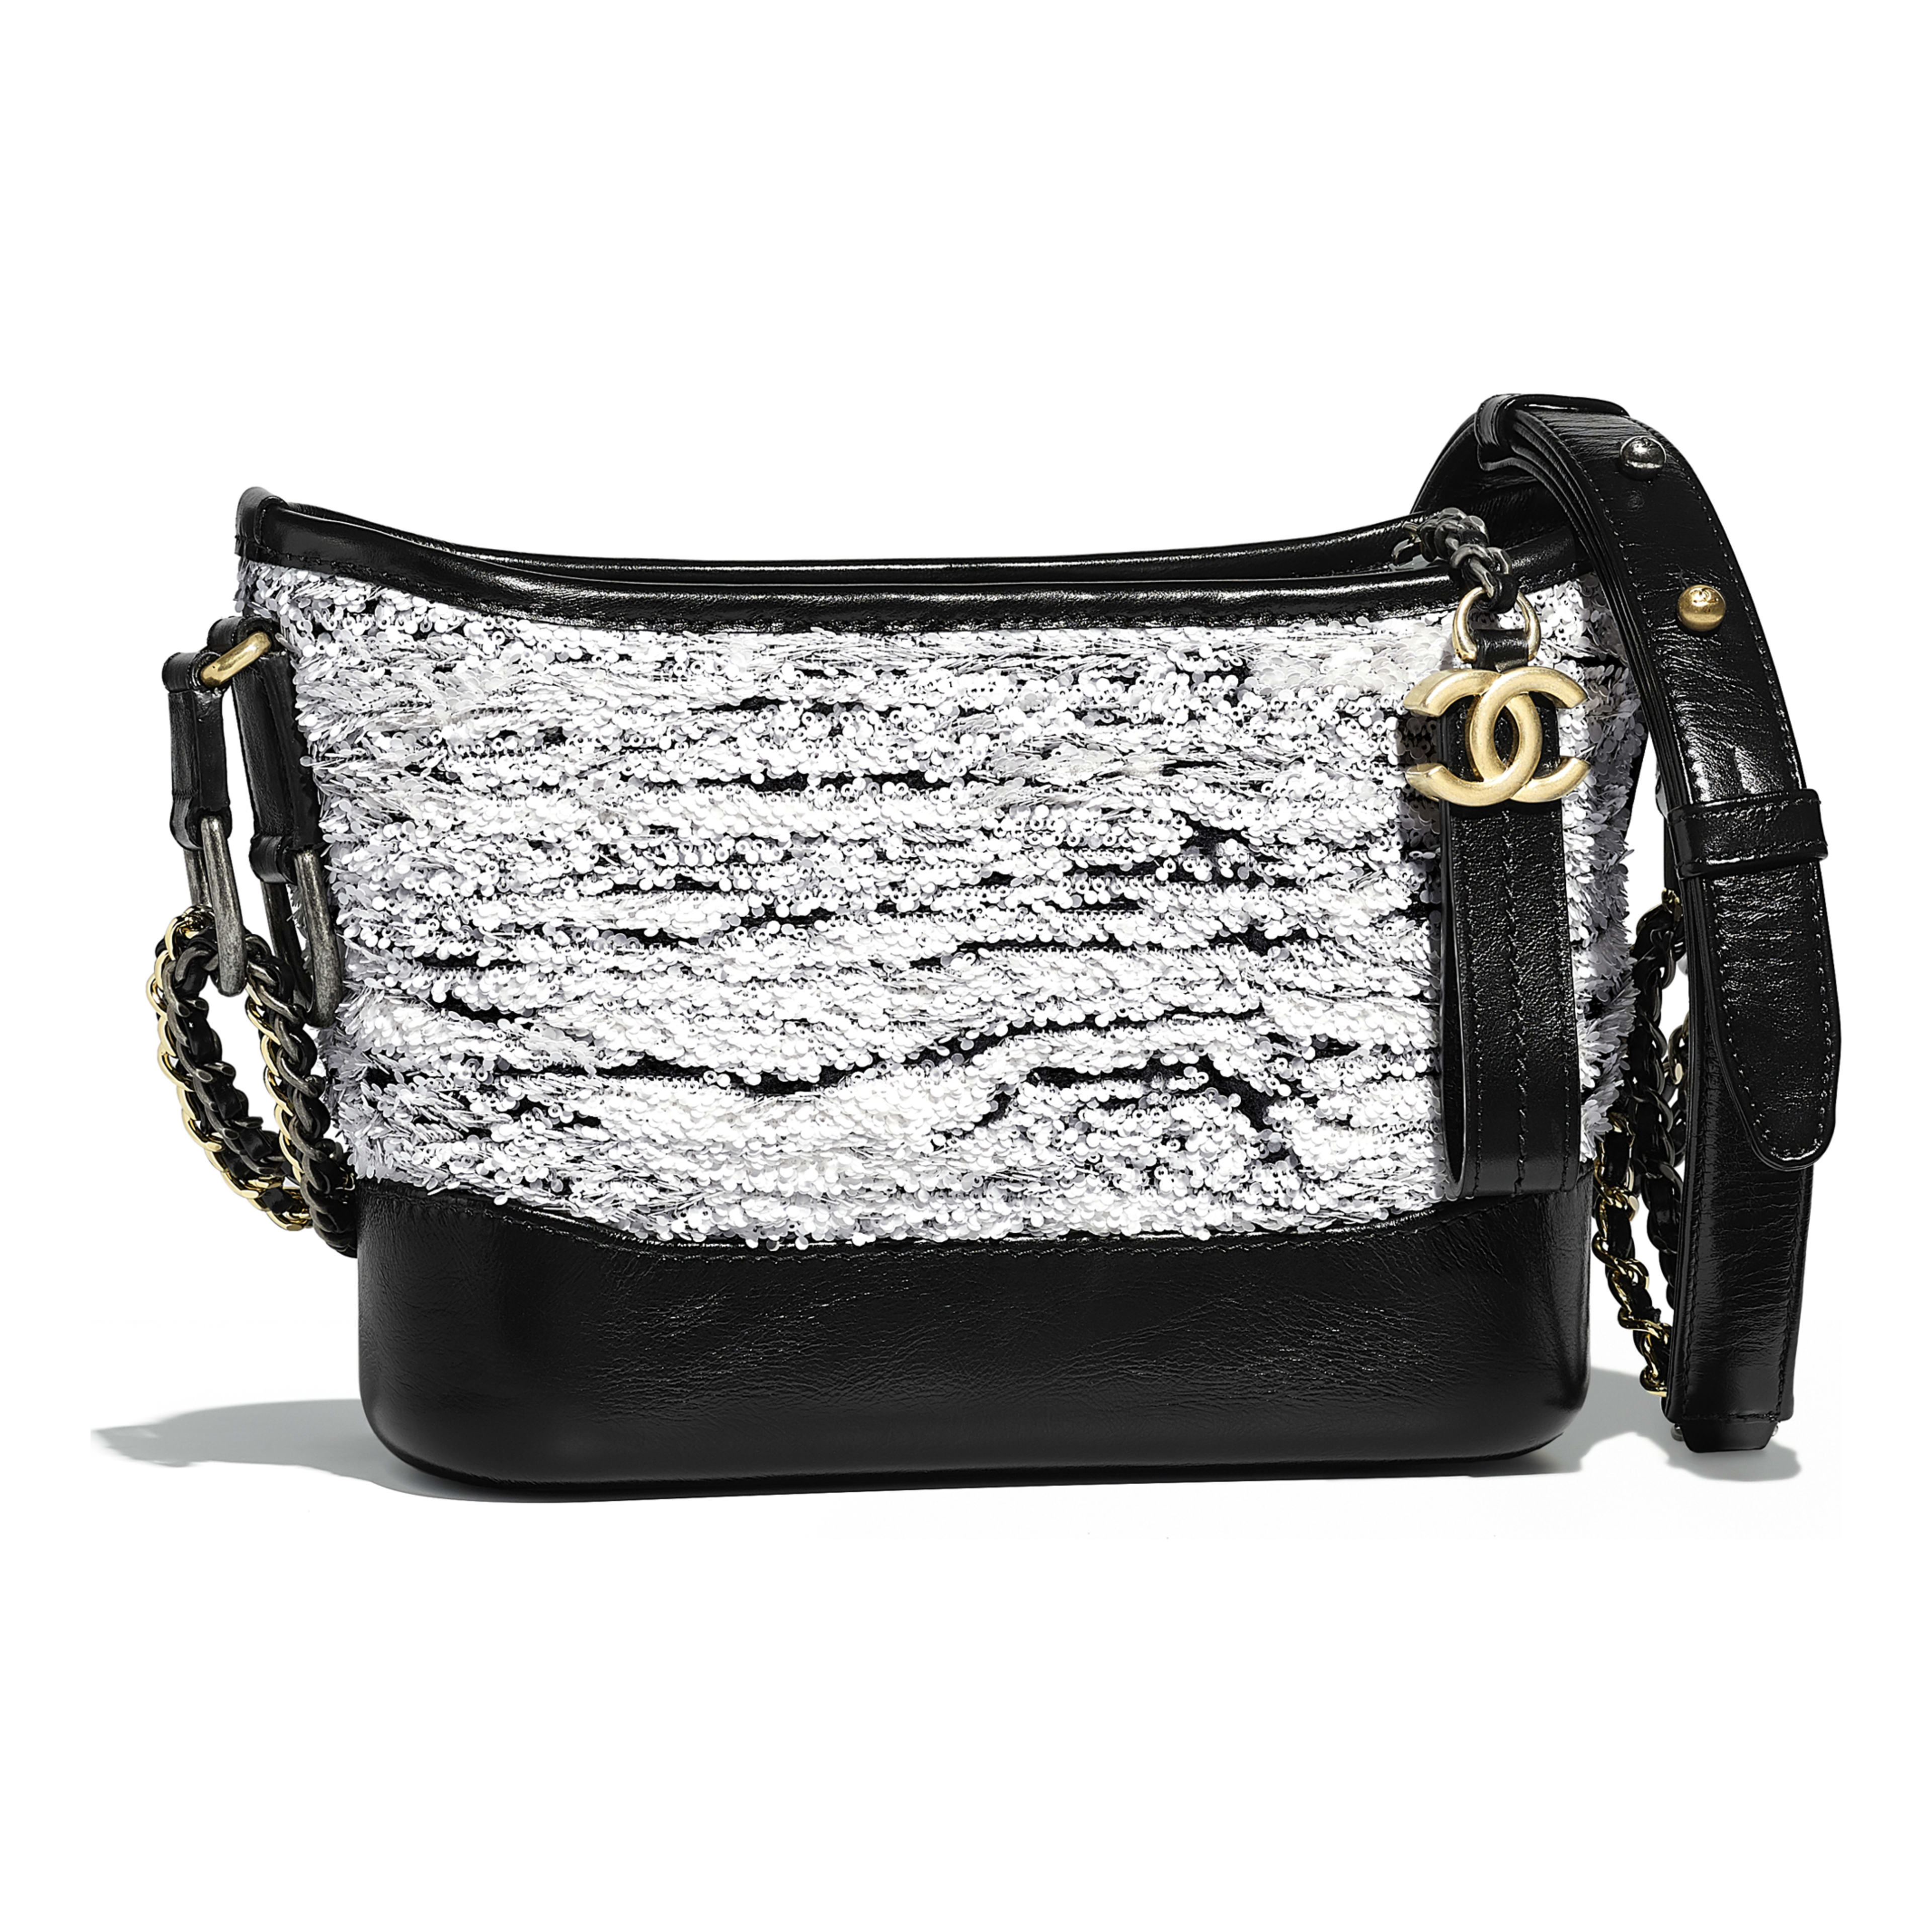 CHANEL S GABRIELLE Small Hobo Bag Sequins, Wool, Calfskin, Silver-Tone    Gold-Tone Metal 56ea3bfe18